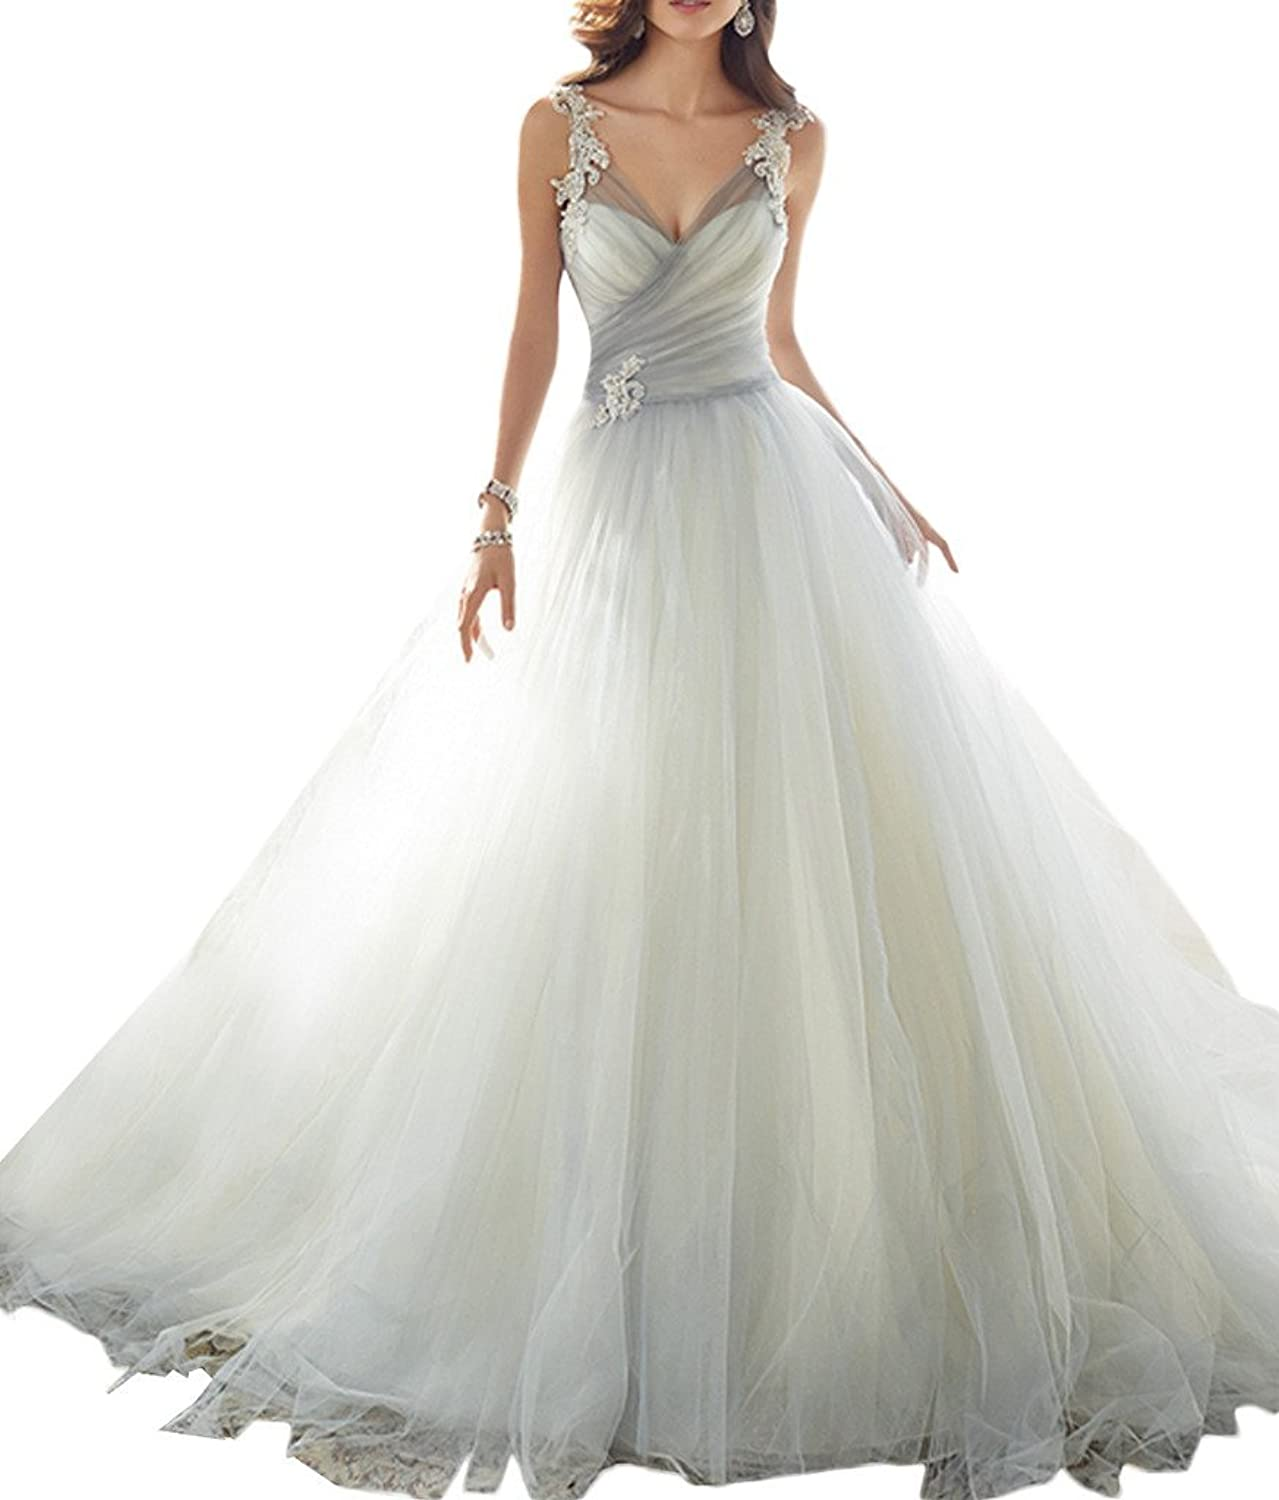 Avril Dress Tulle Ball Gown Appliques Long Train Lace Up Wedding Gown